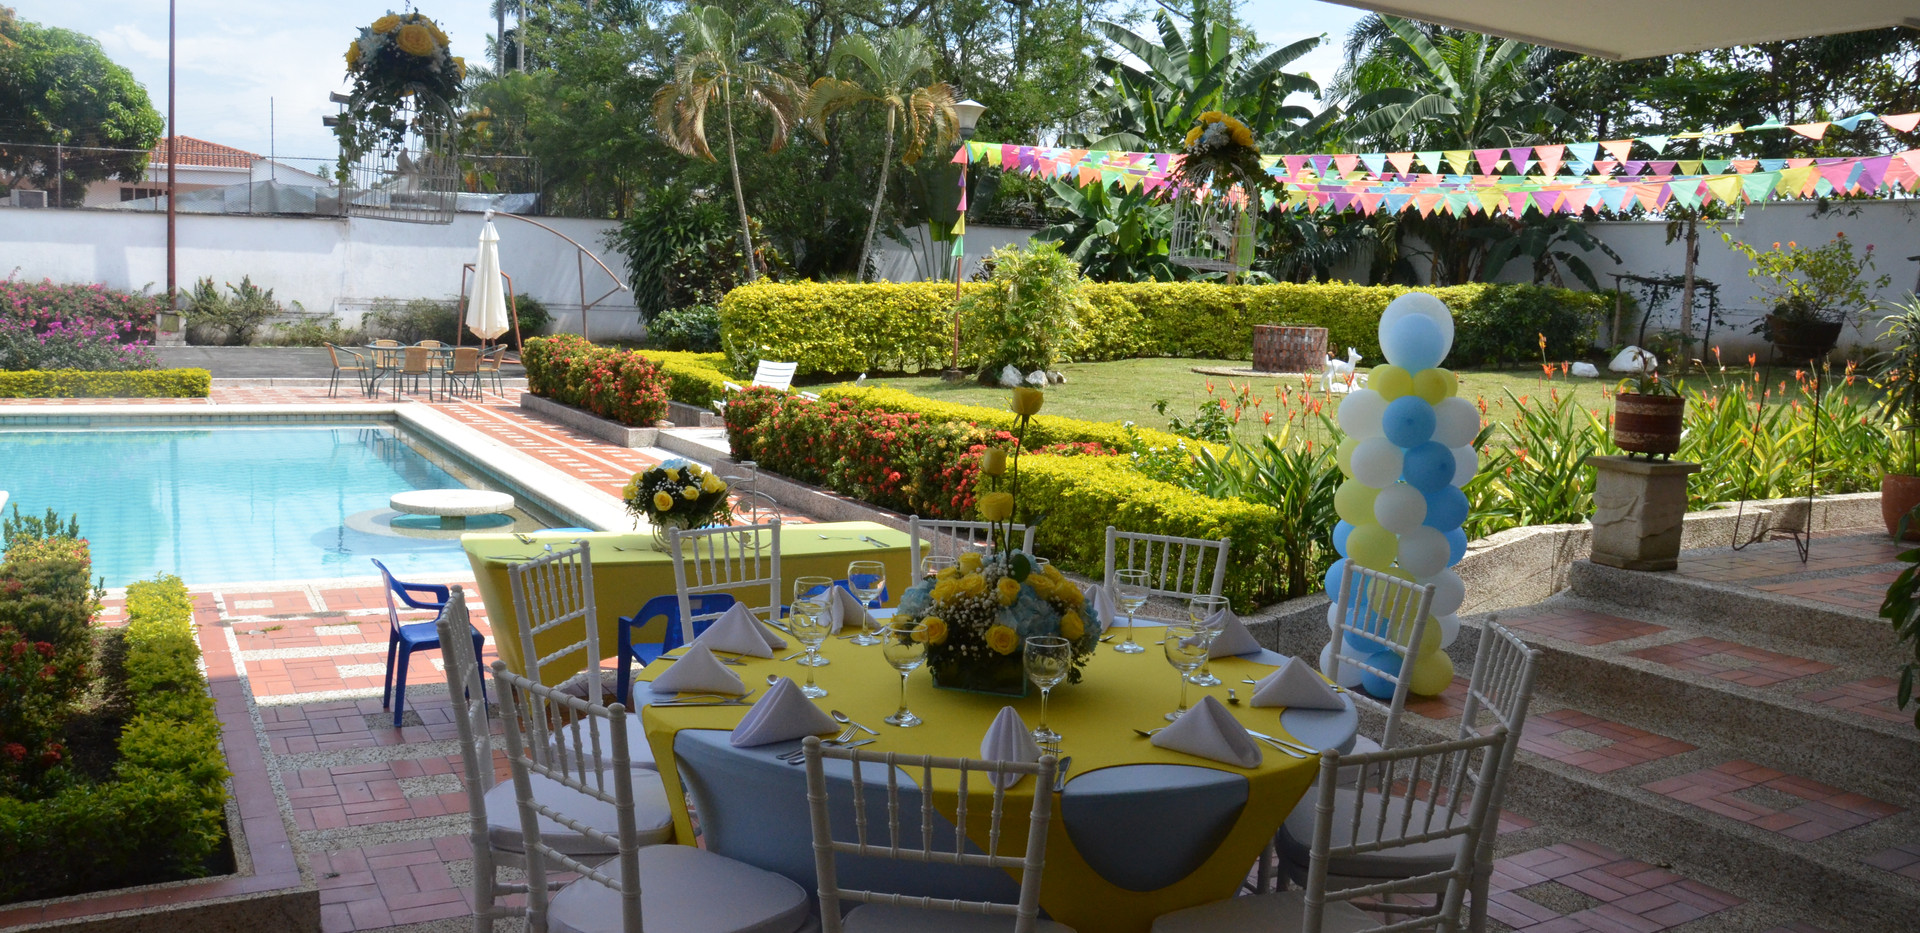 Bautizos y Baby Shower